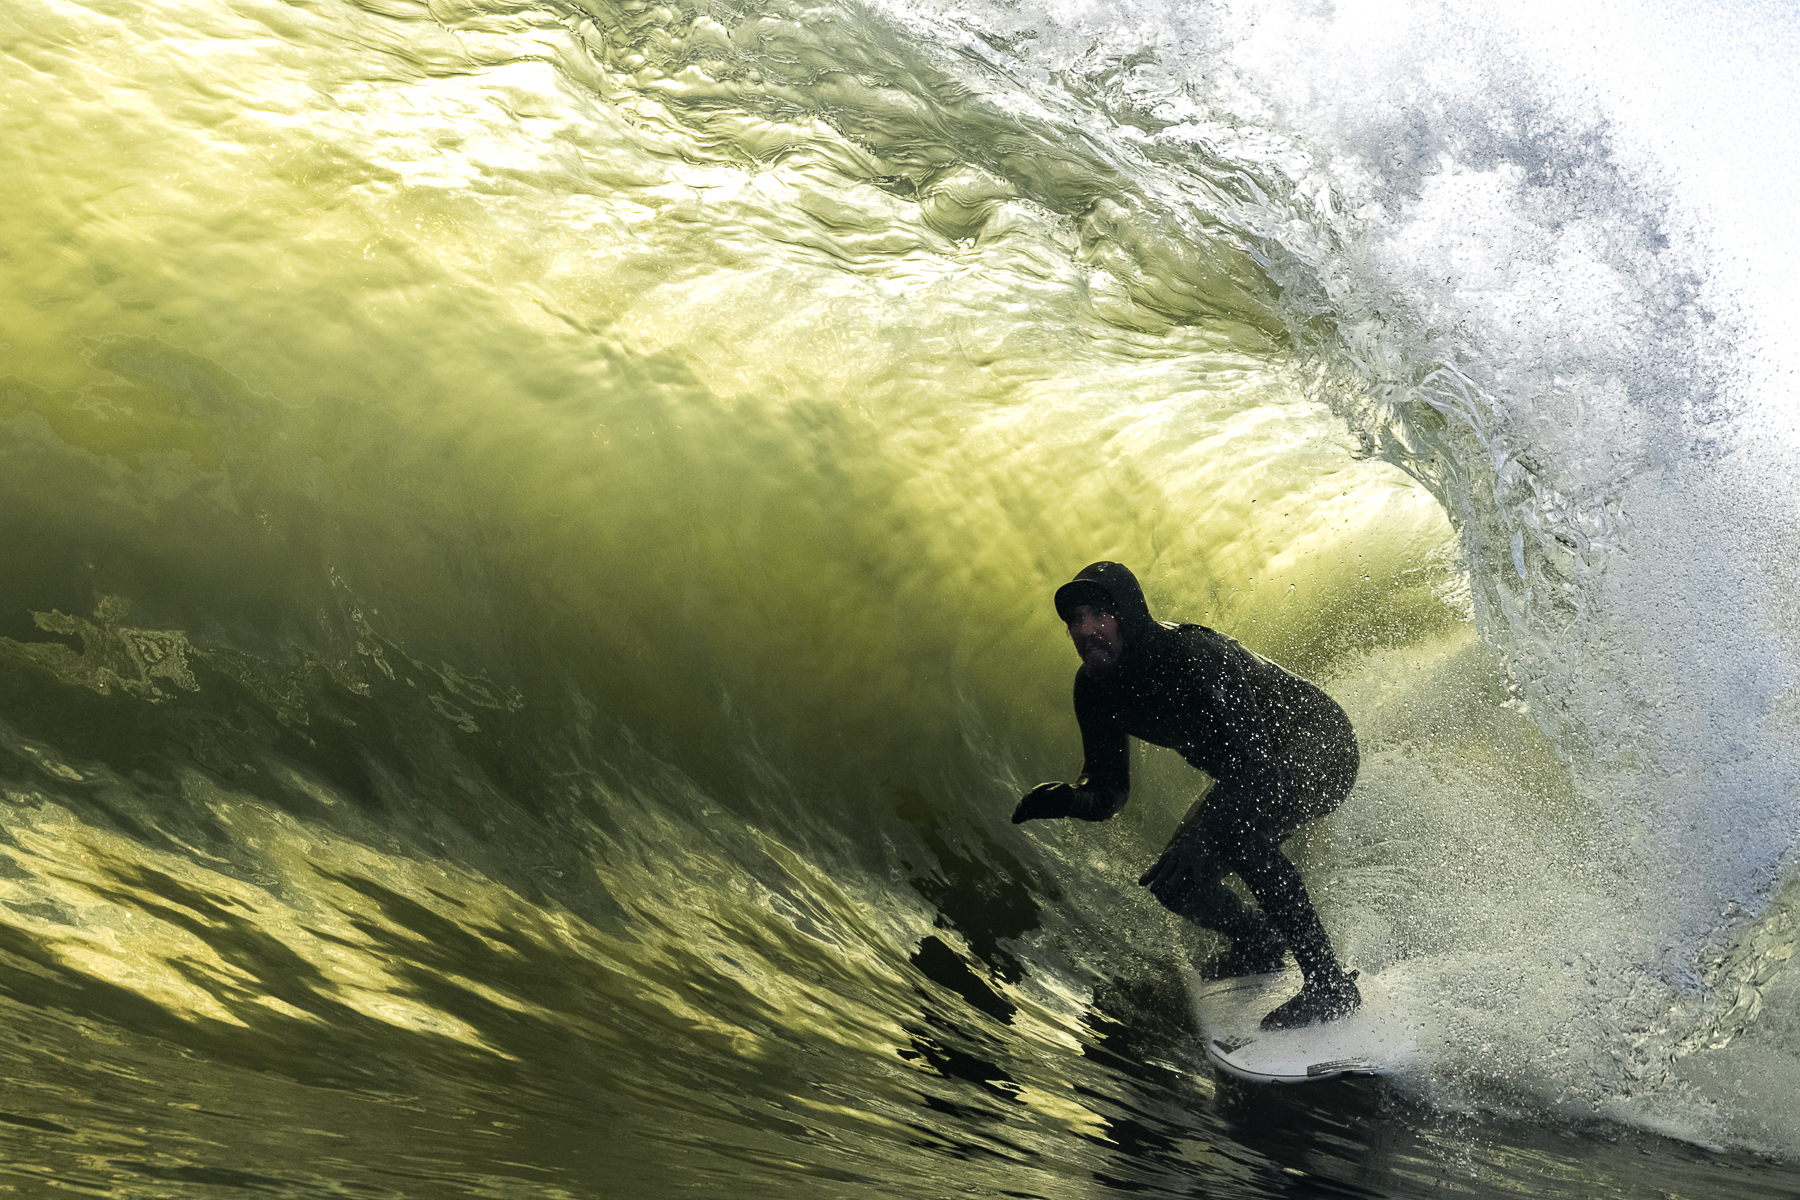 tofino_surf_photography_timmy_reyes_nordic_surfers_mag_Canada_Vancouver_Isand_2018.jpg